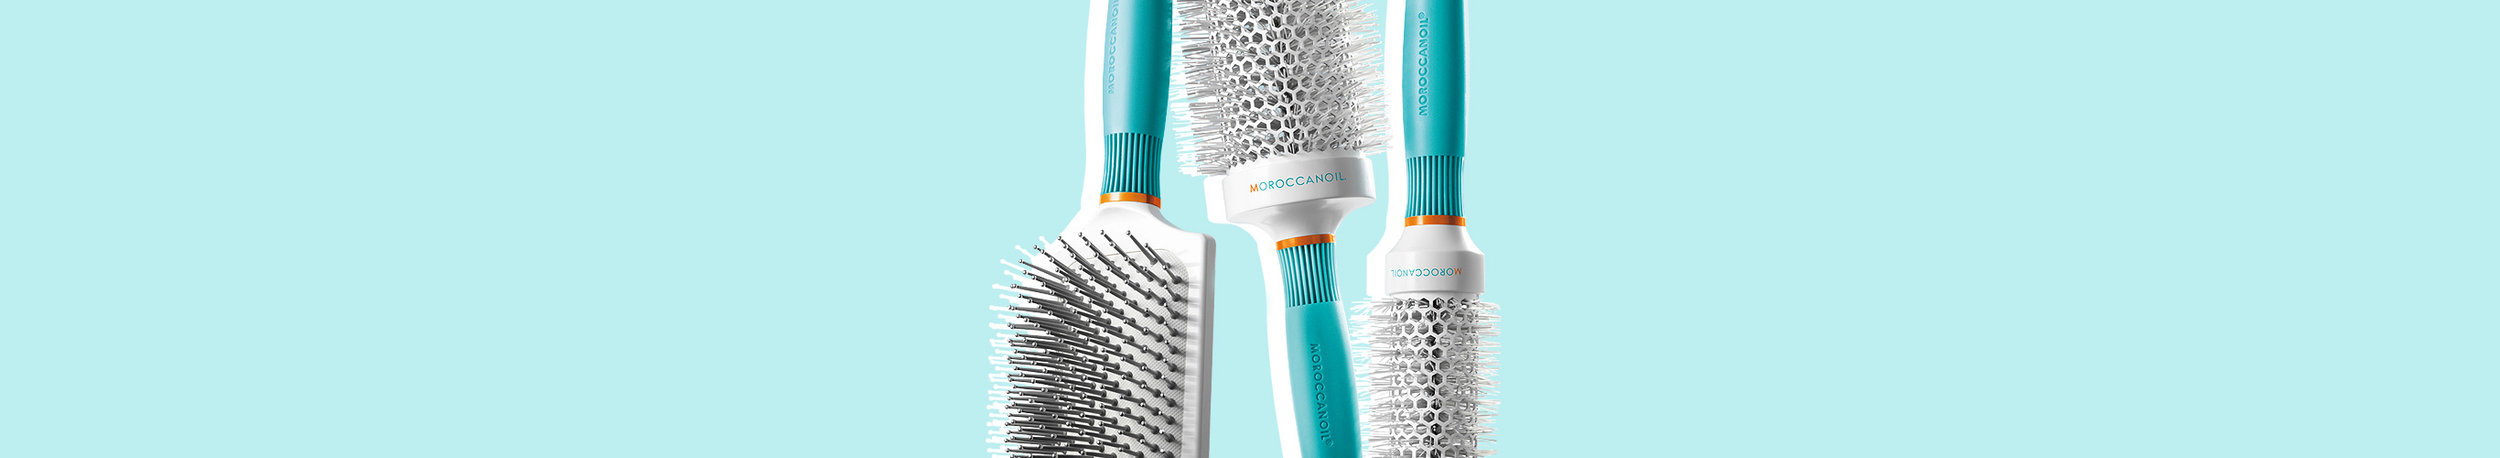 TOOls & brushes - Find high-quality hair care tools, including seamless combs and brushes that are gentle on your hair.